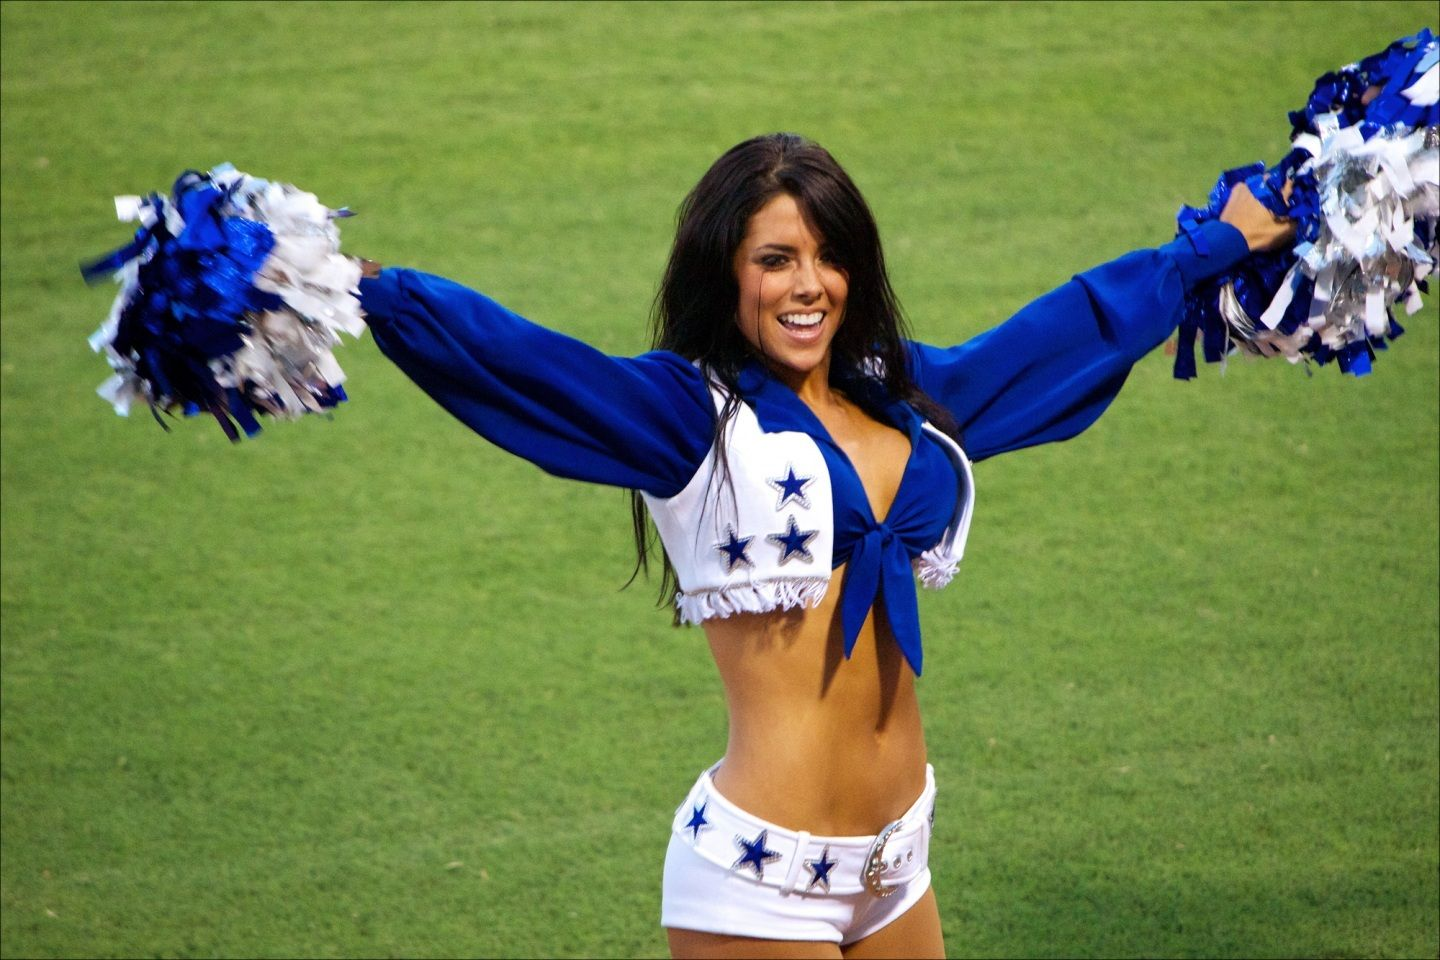 The 10 Hottest Dallas Cowboys' Cheerleaders Ever